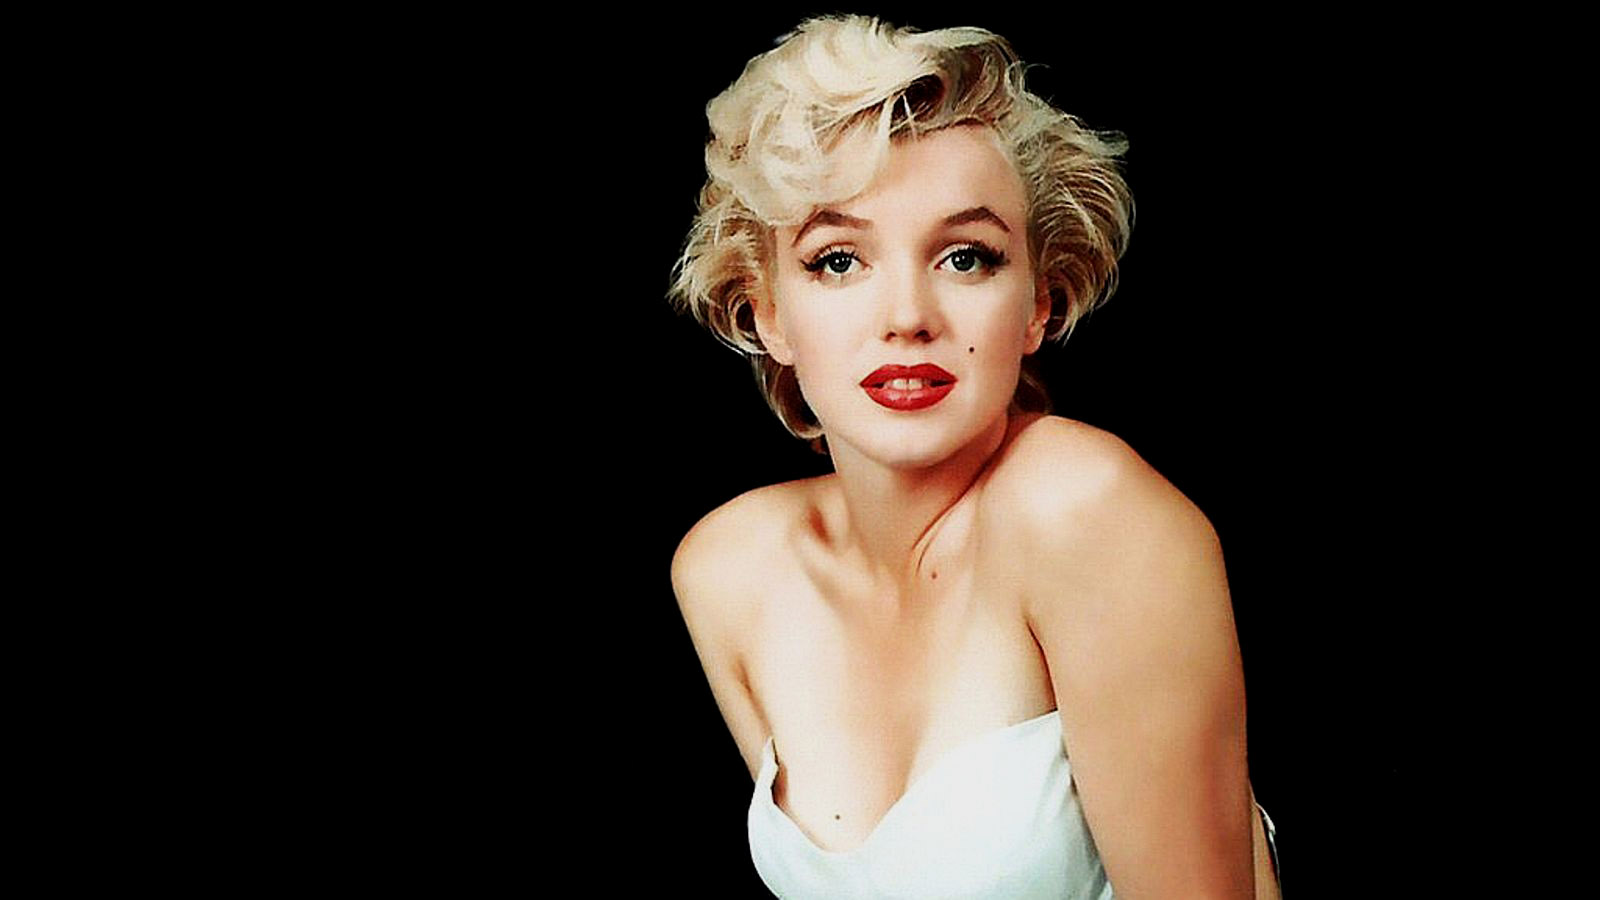 http://obviousmag.org/a_hora_e_a_vez/2015/05/22/Best-Marilyn-Monroe-Movies.jpg